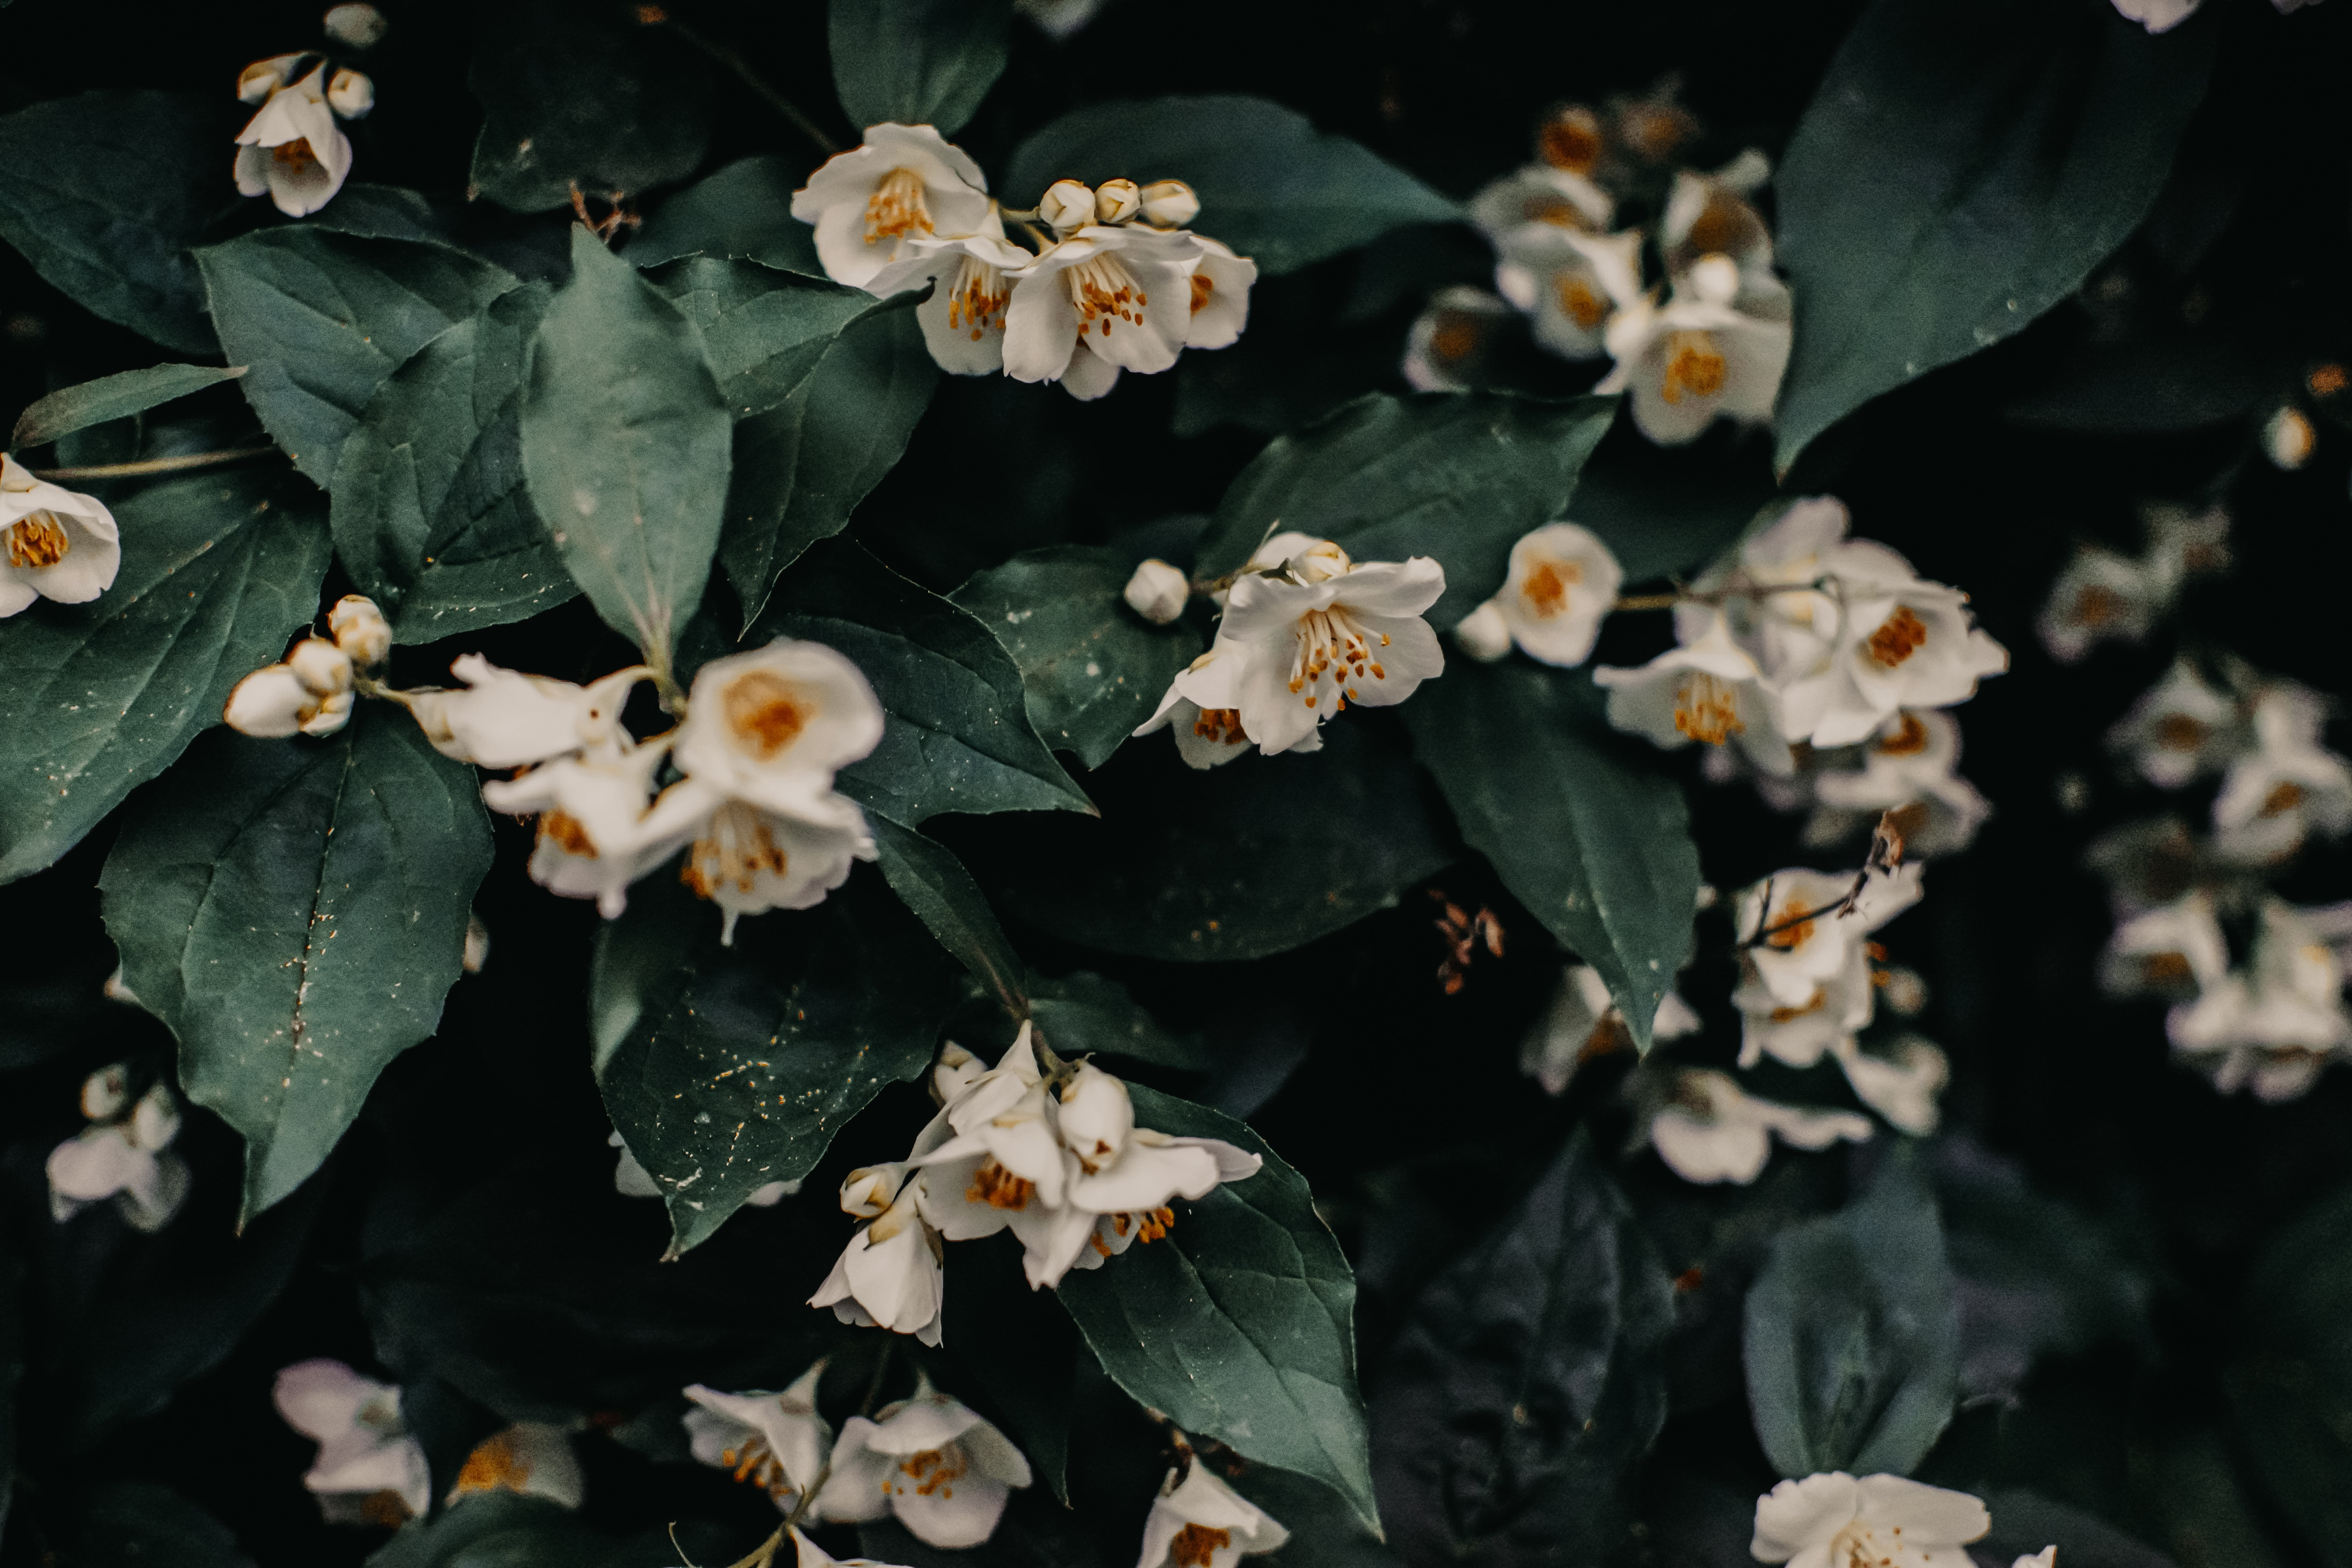 a photo of white flowers with dark green leaves, in moody lighting